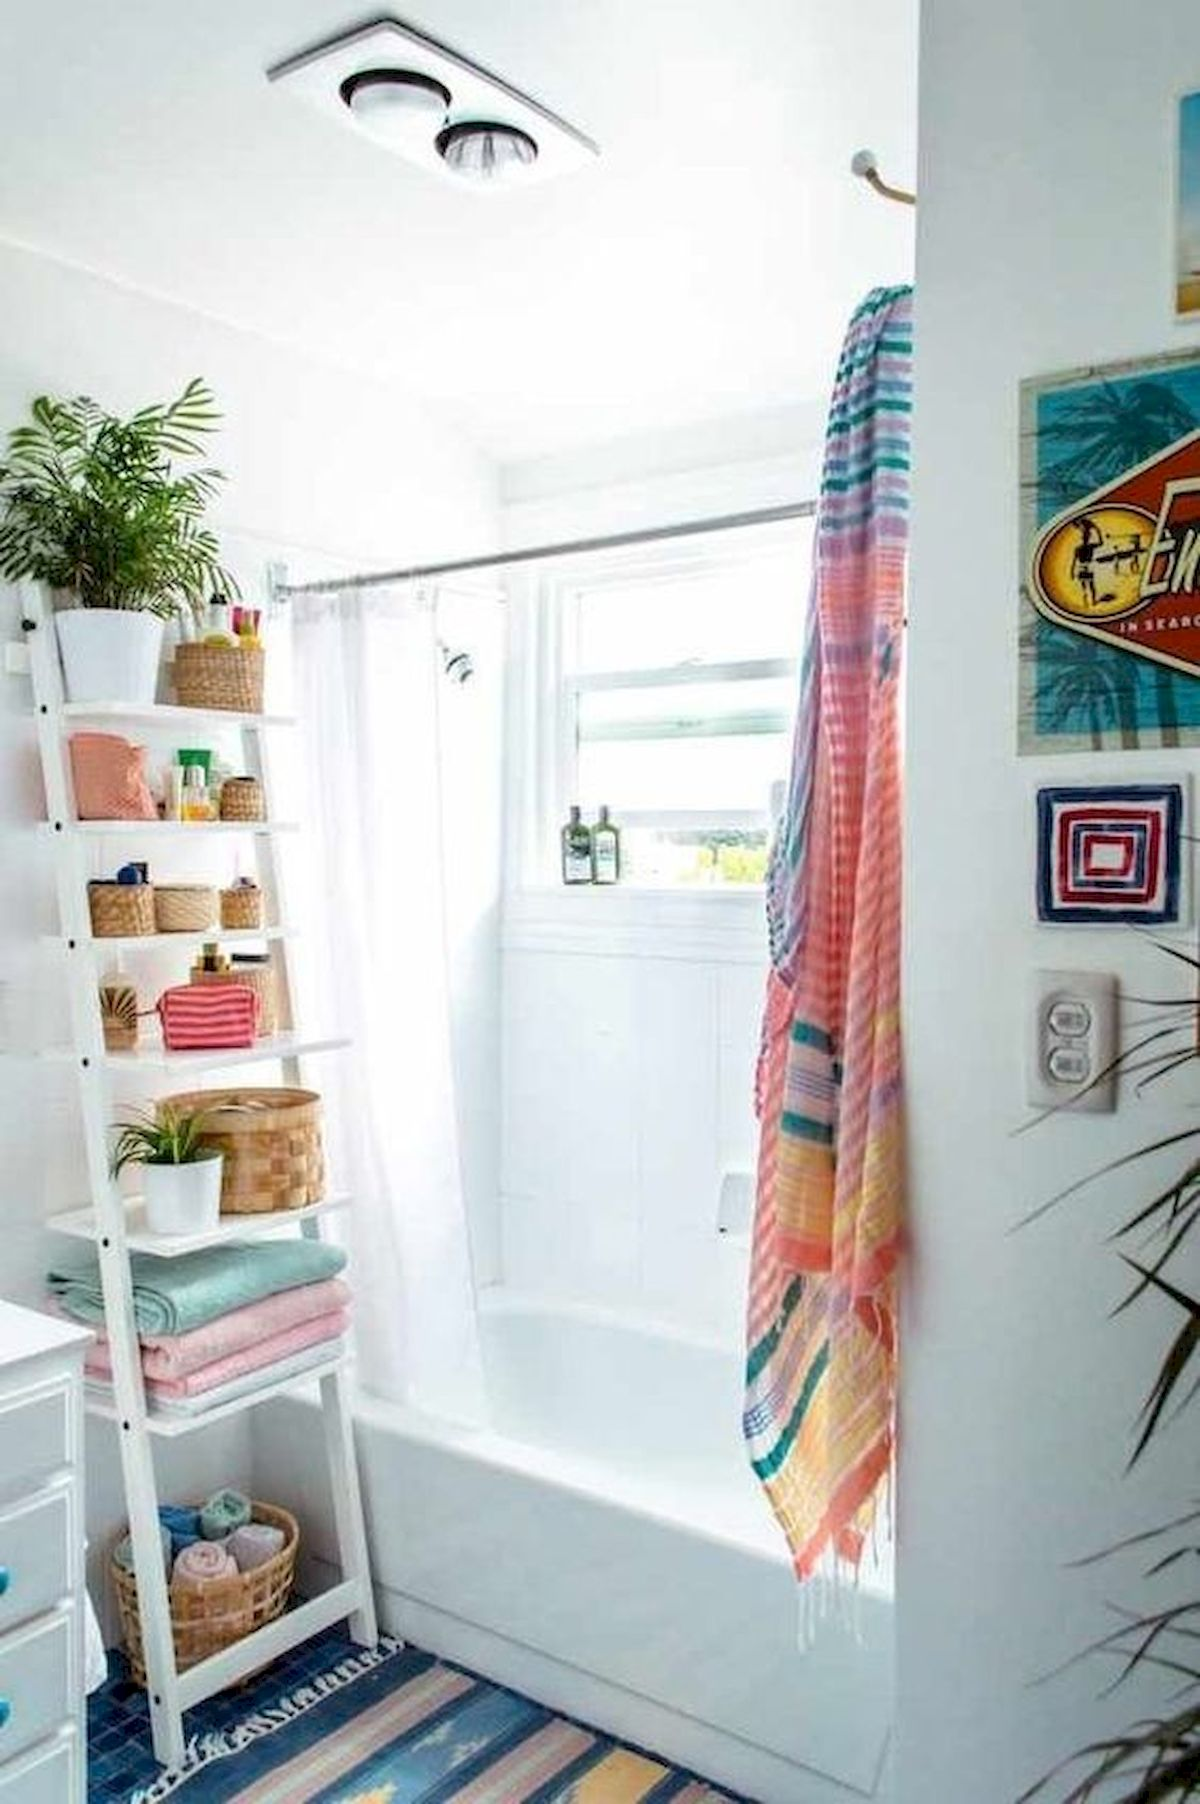 50 Best DIY Storage Design Ideas to Maximize Your Small Bathroom Space (25)